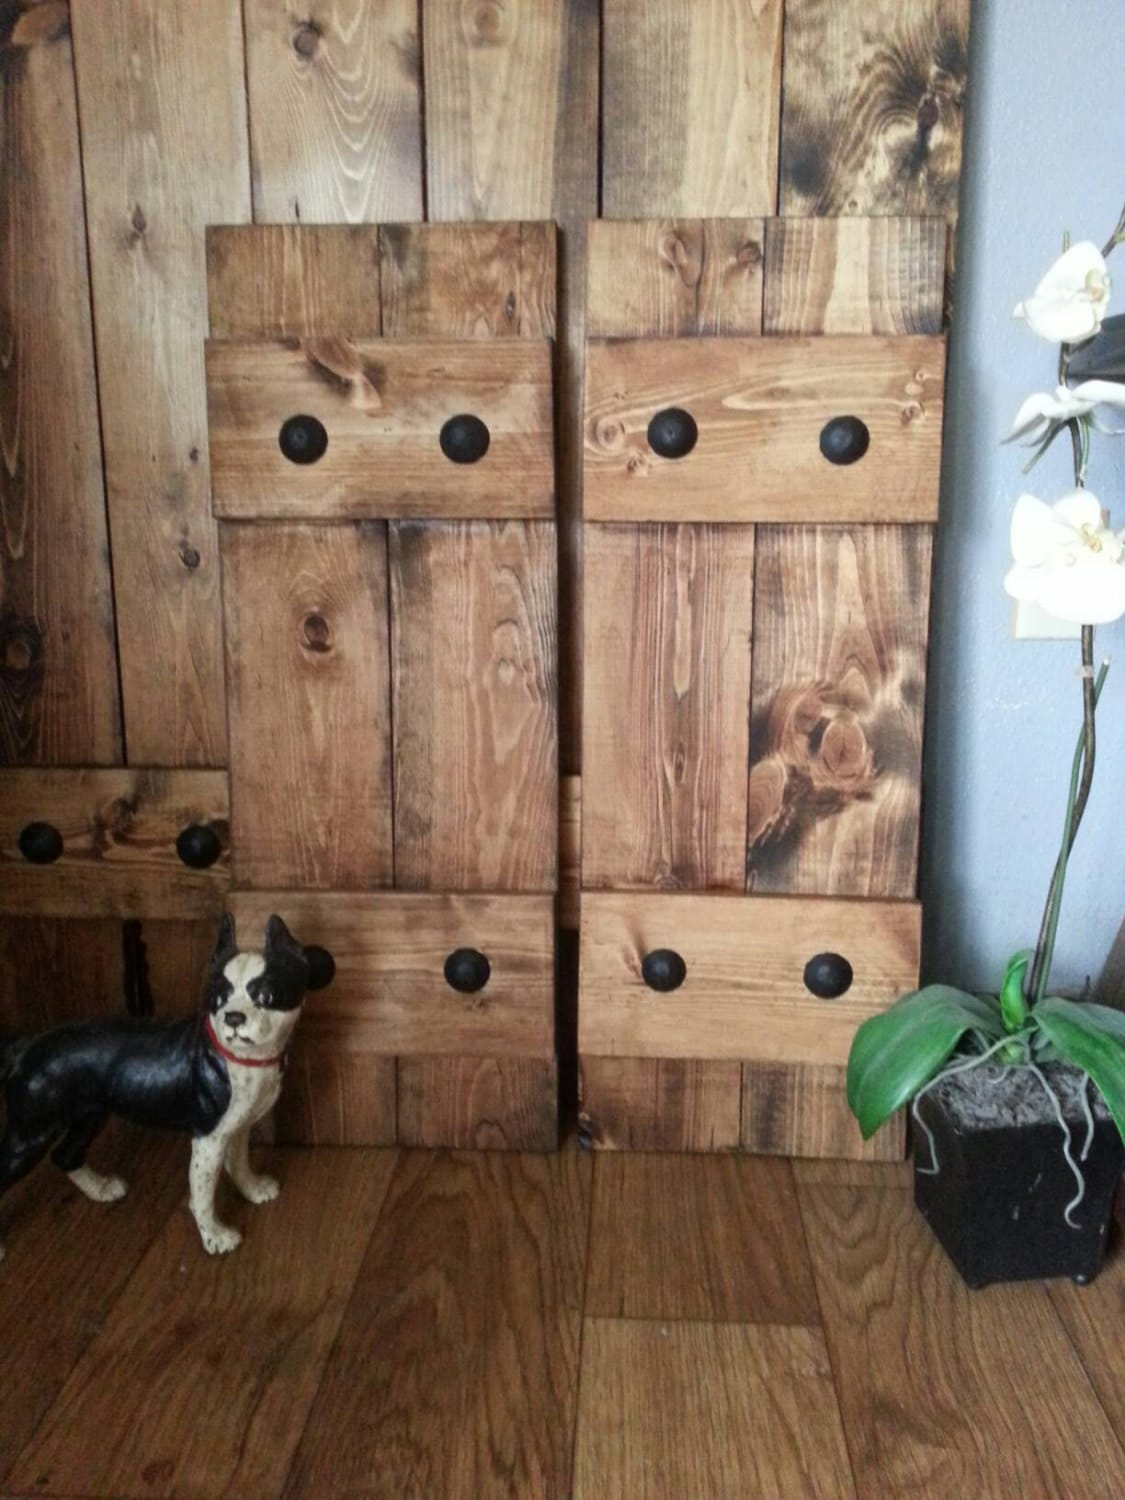 for about dont decorative rustic shutters wall interior know strangetowne of what decor image you